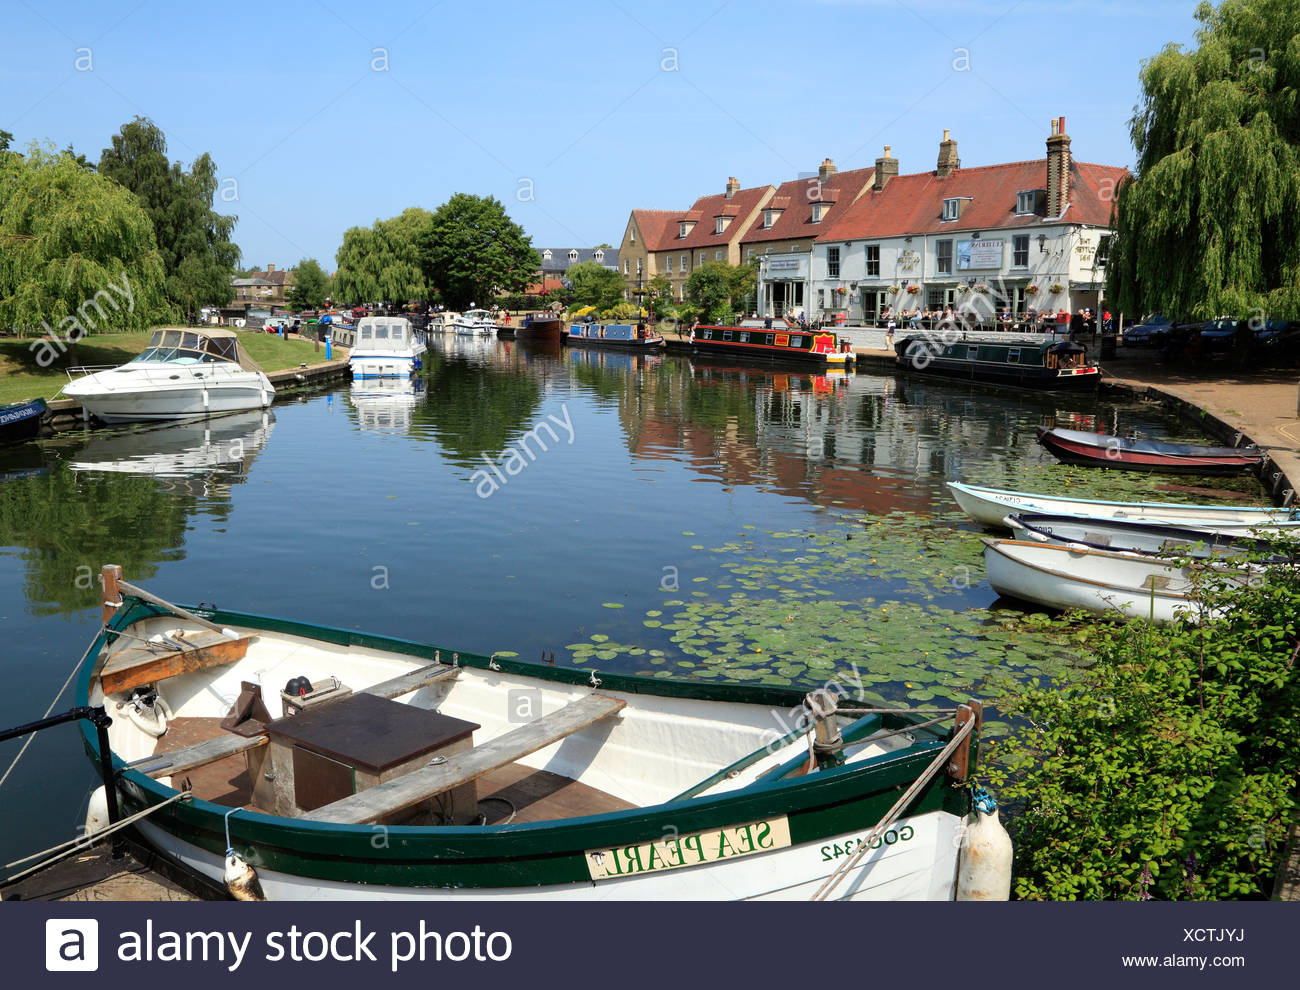 Ely, Cutter Inn, River Ouse, boats, barges, Cambridgeshire England UK English rivers inns pub pubs - Stock Image